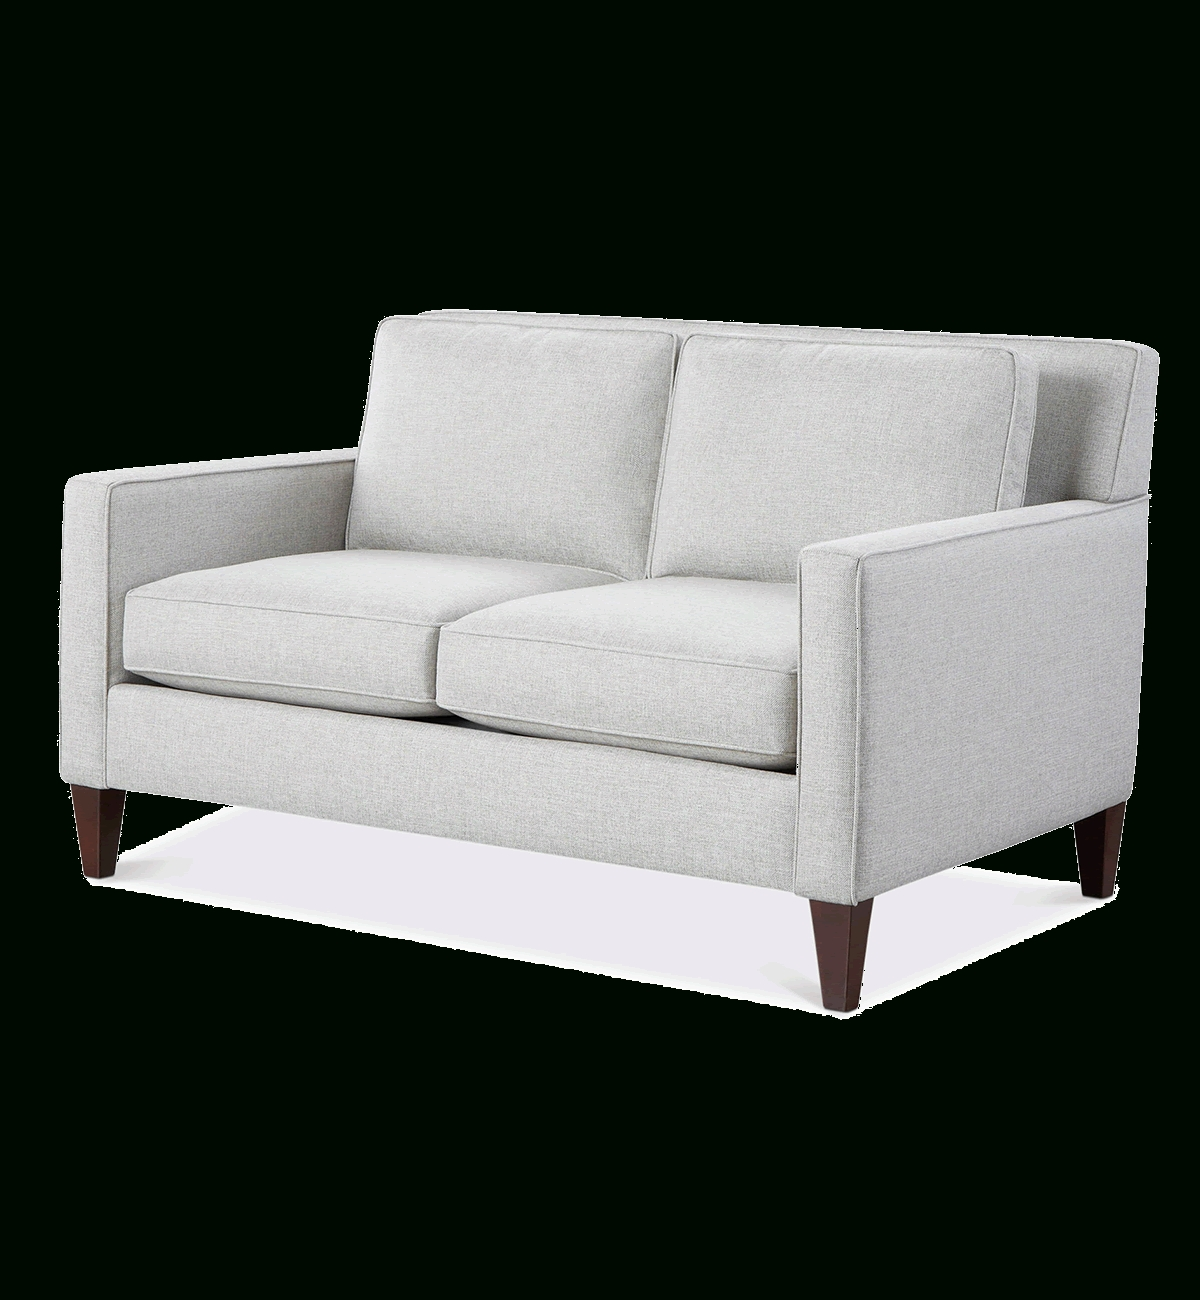 Leather Couches And Sofas – Macy's Pertaining To Favorite Macys Leather Sofas (View 8 of 20)